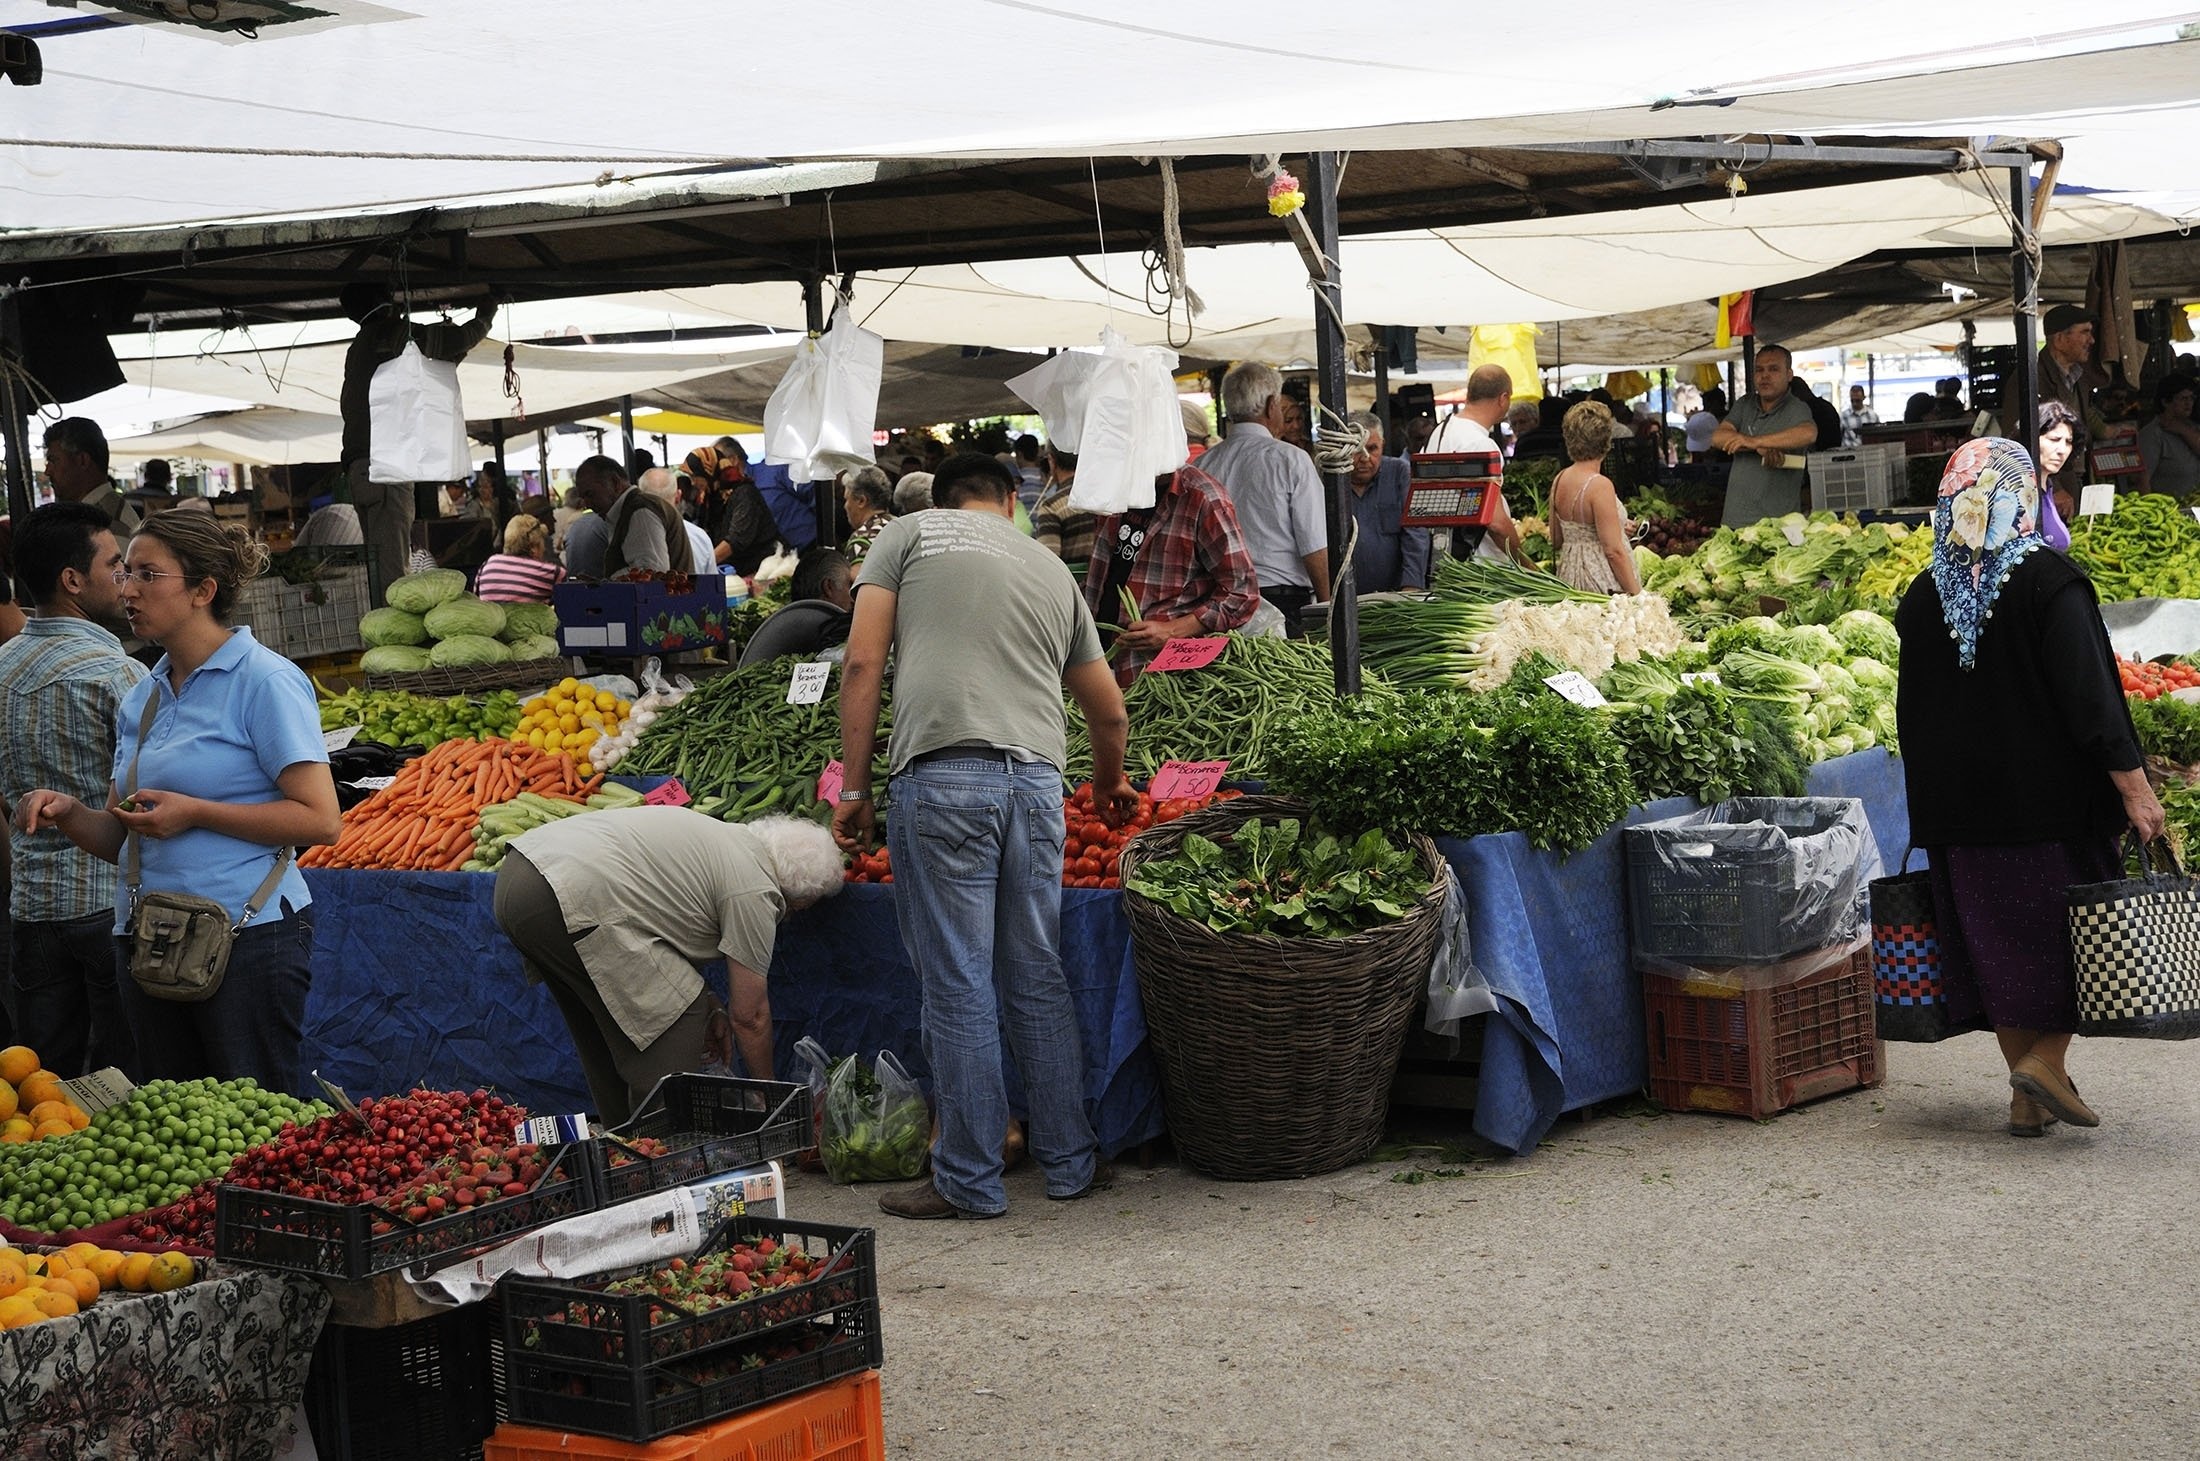 One town away from Yalıkavak, the Turgutreis bazaar also sells an array of fresh fruit and vegetables in Bodrum, Muğla. (Getty Images)